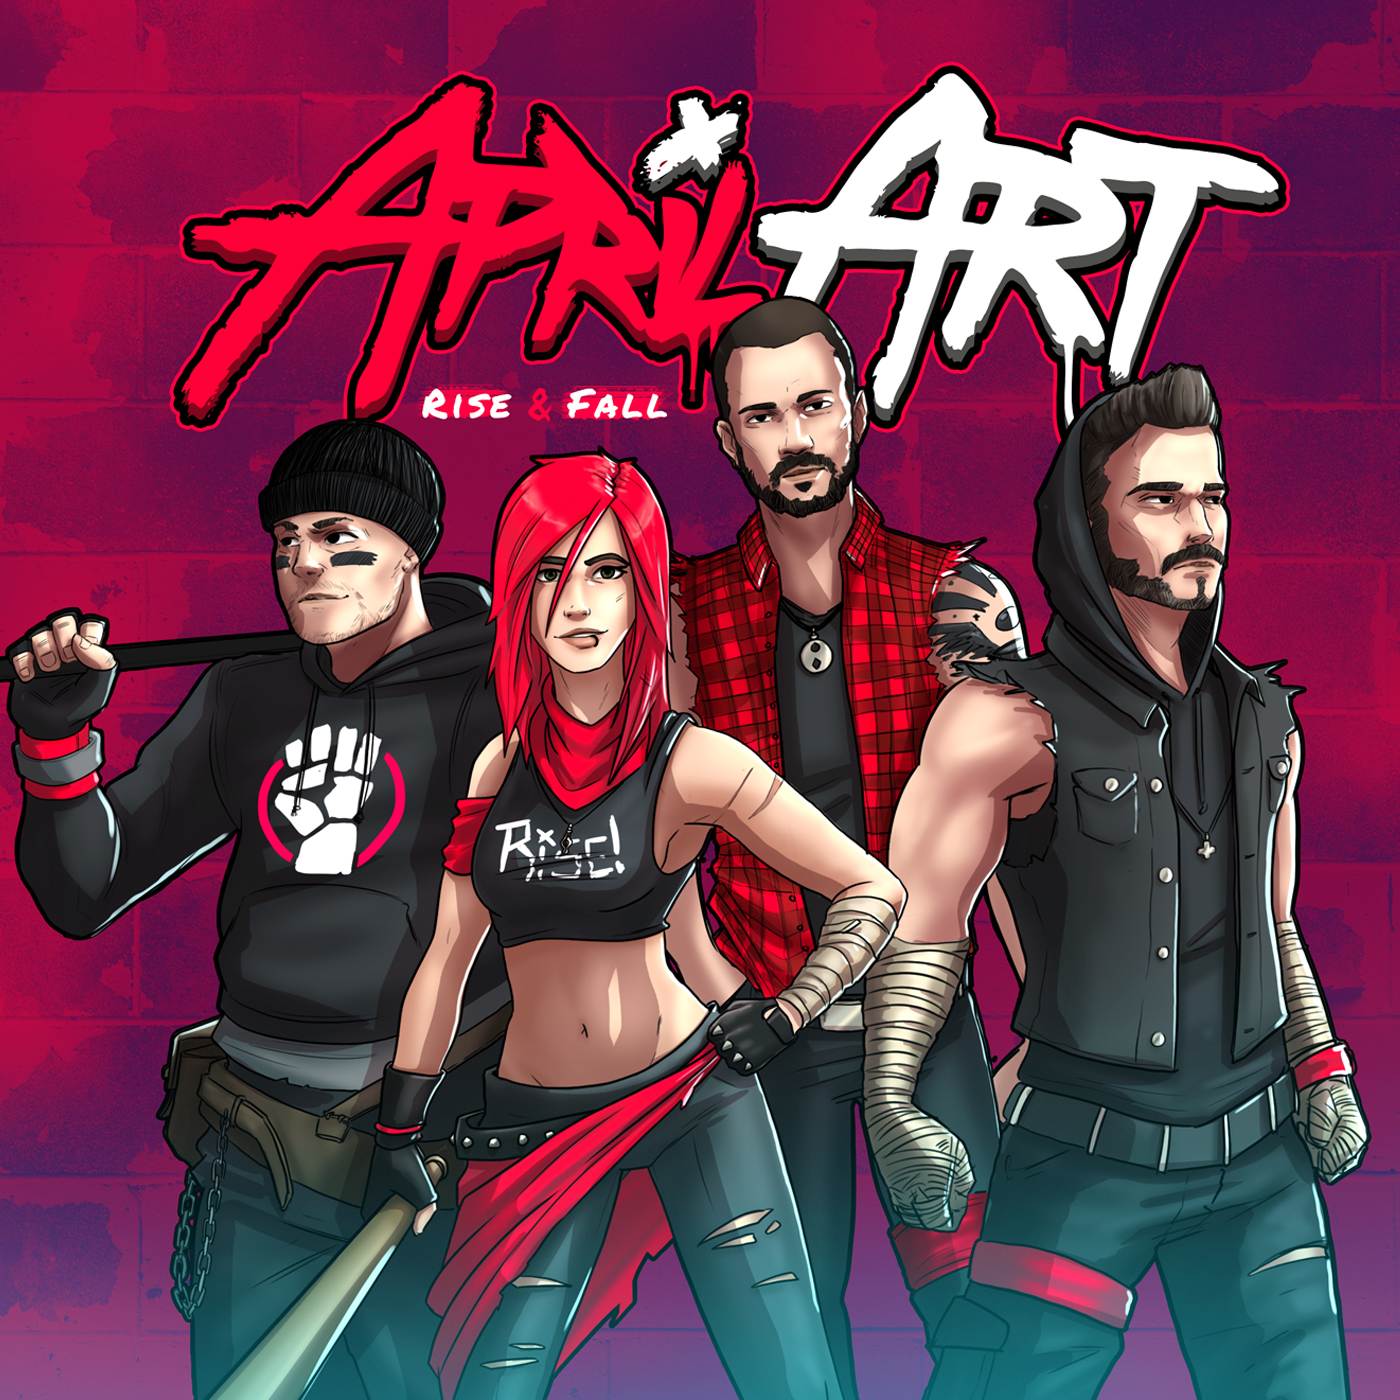 april-art-rise-and-fall-frontalangriff-album-review